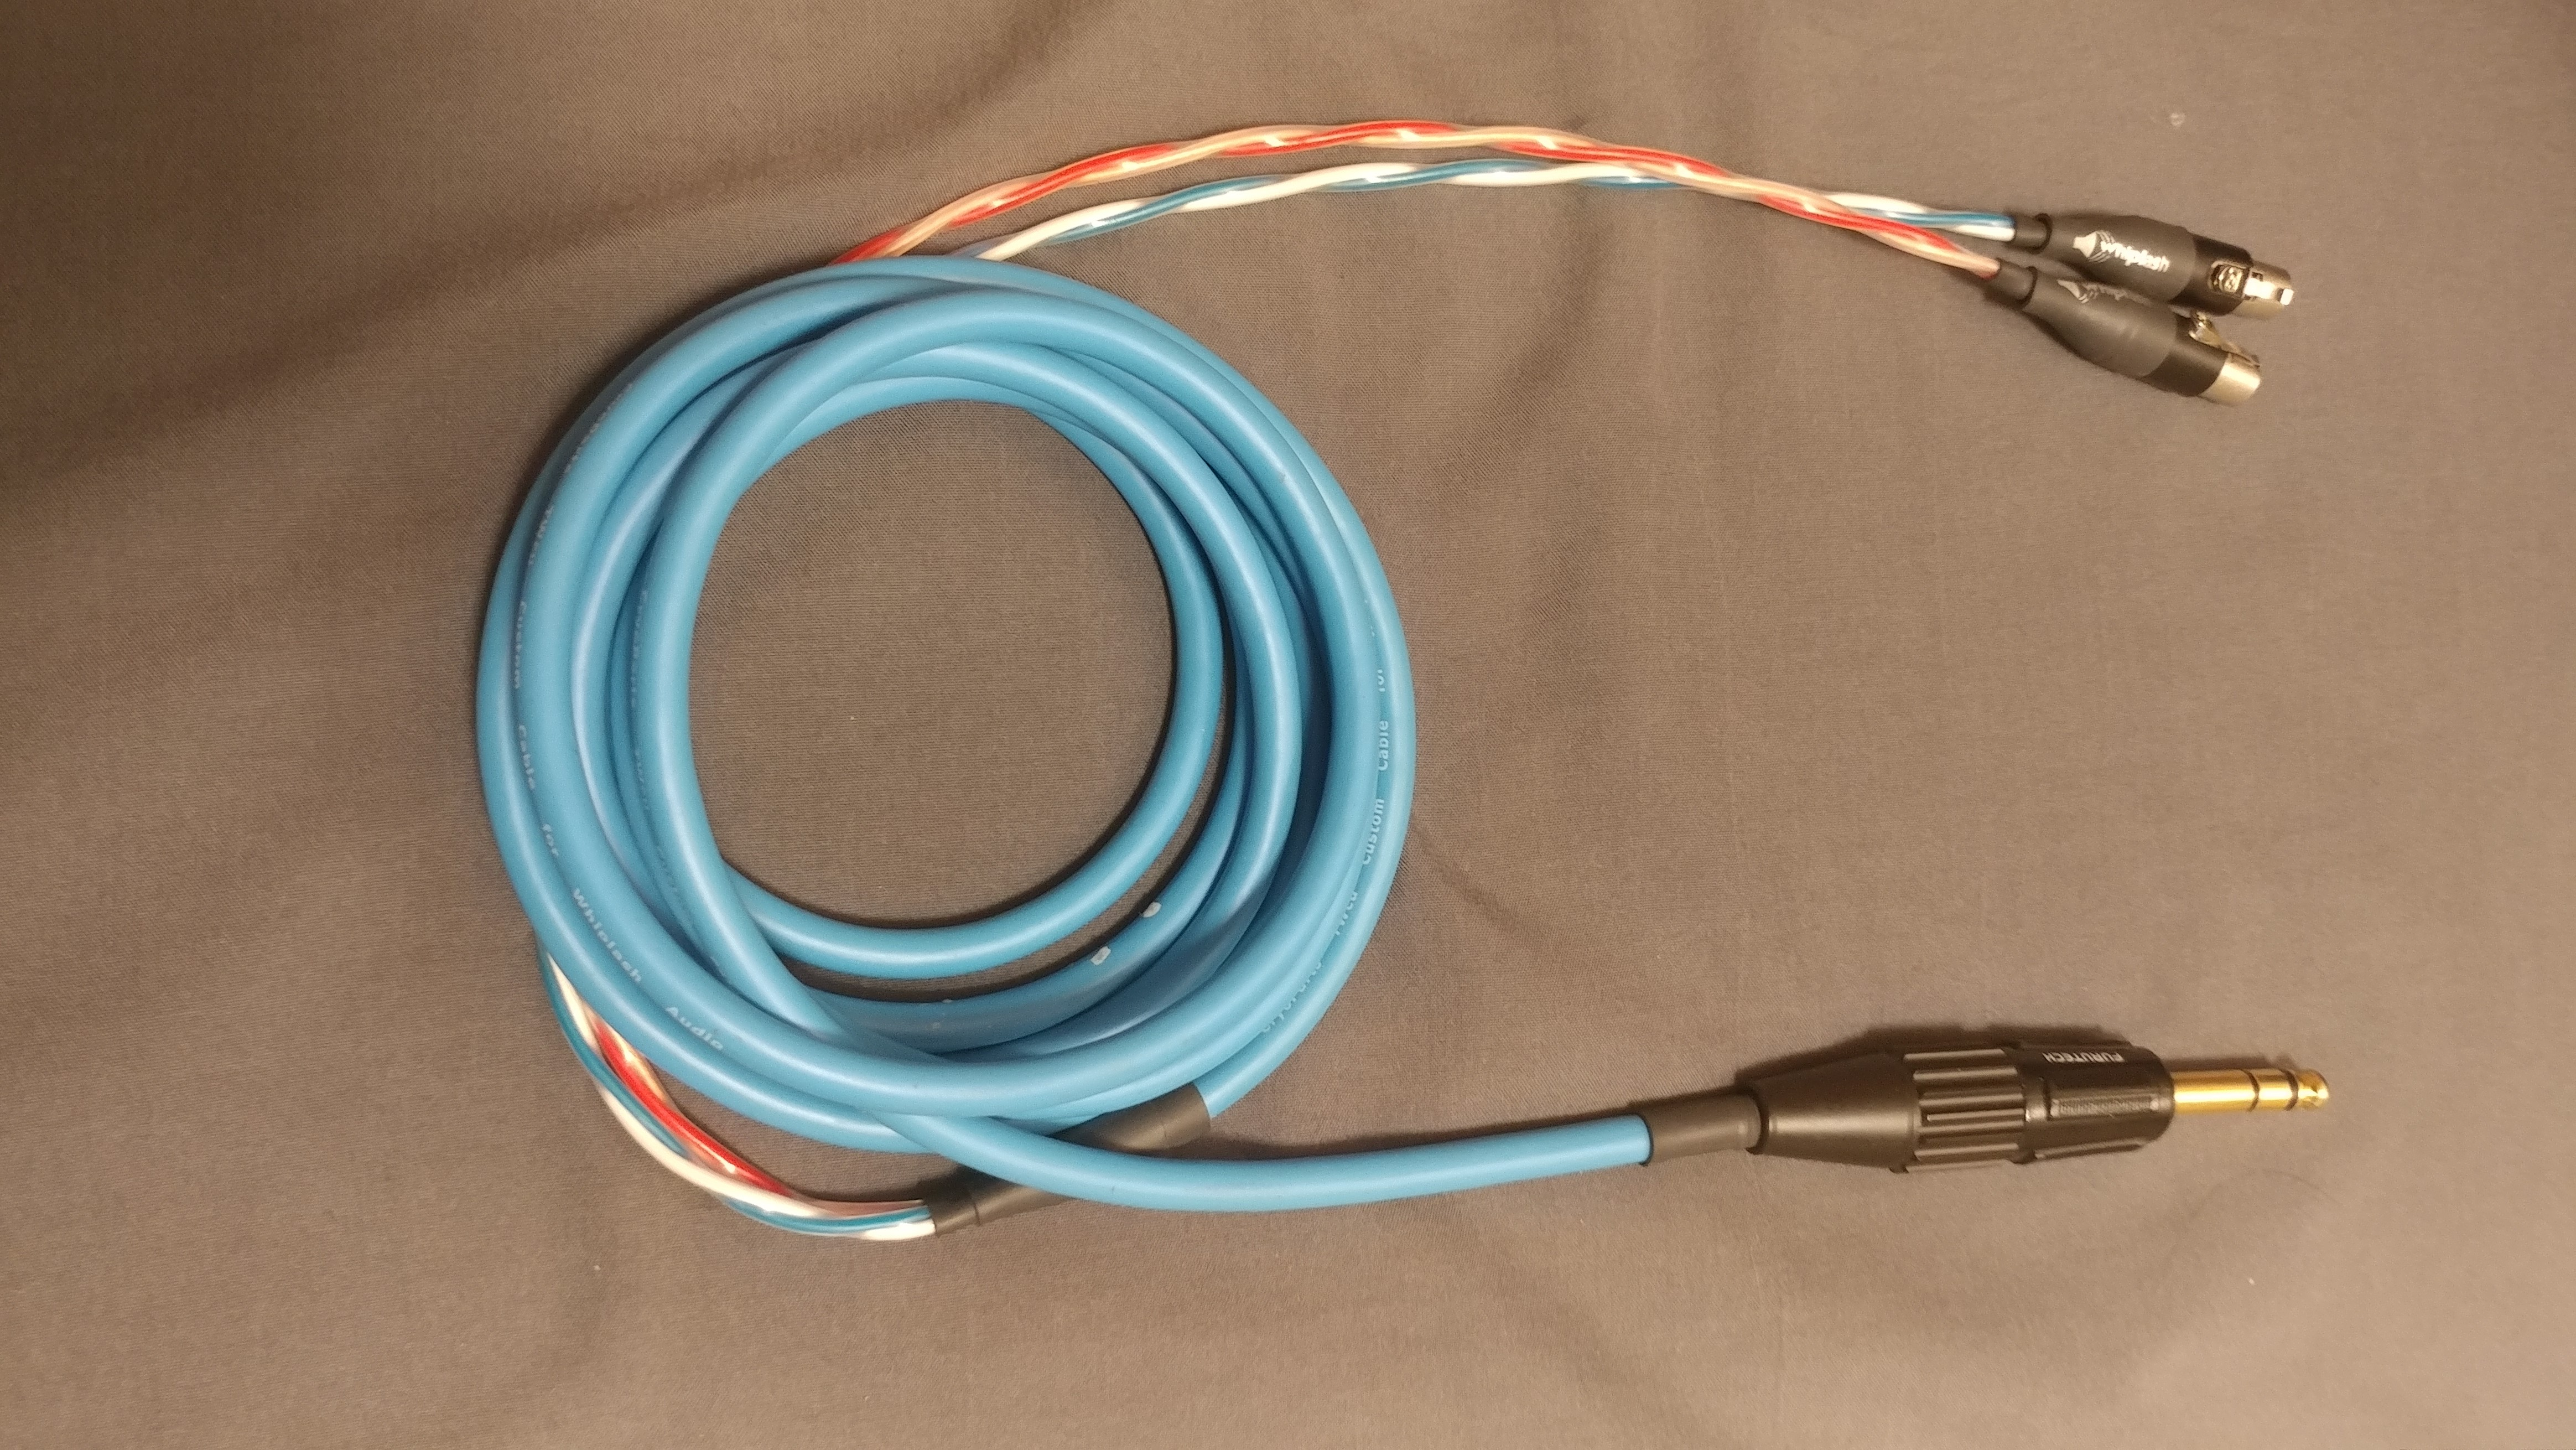 SOLD: Norne / Forza / Danacable / Toxic / Whiplash - Cables for Sale ...